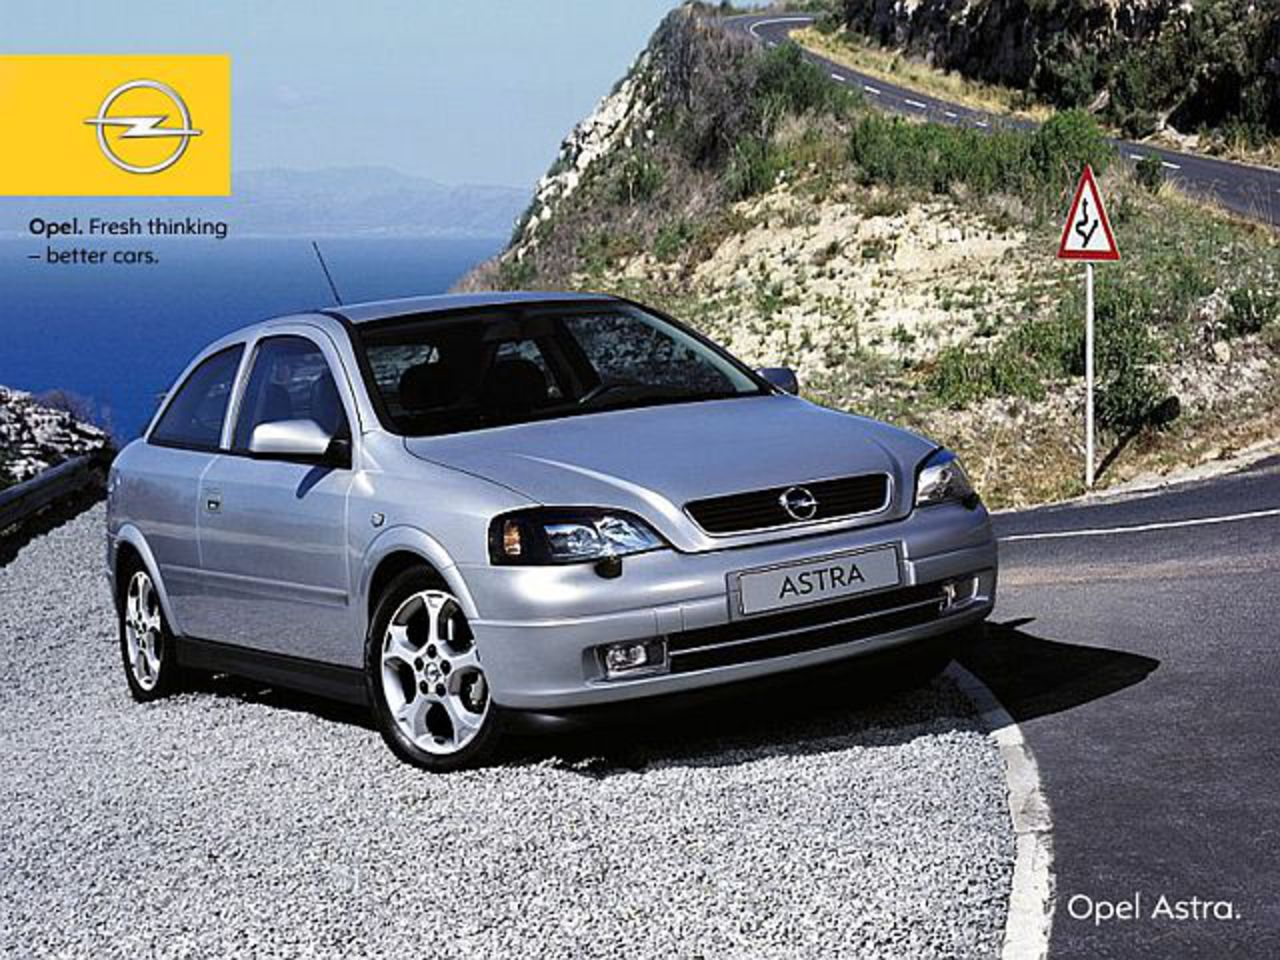 Opel Astra 17 Classic. View Download Wallpaper. 640x480. Comments